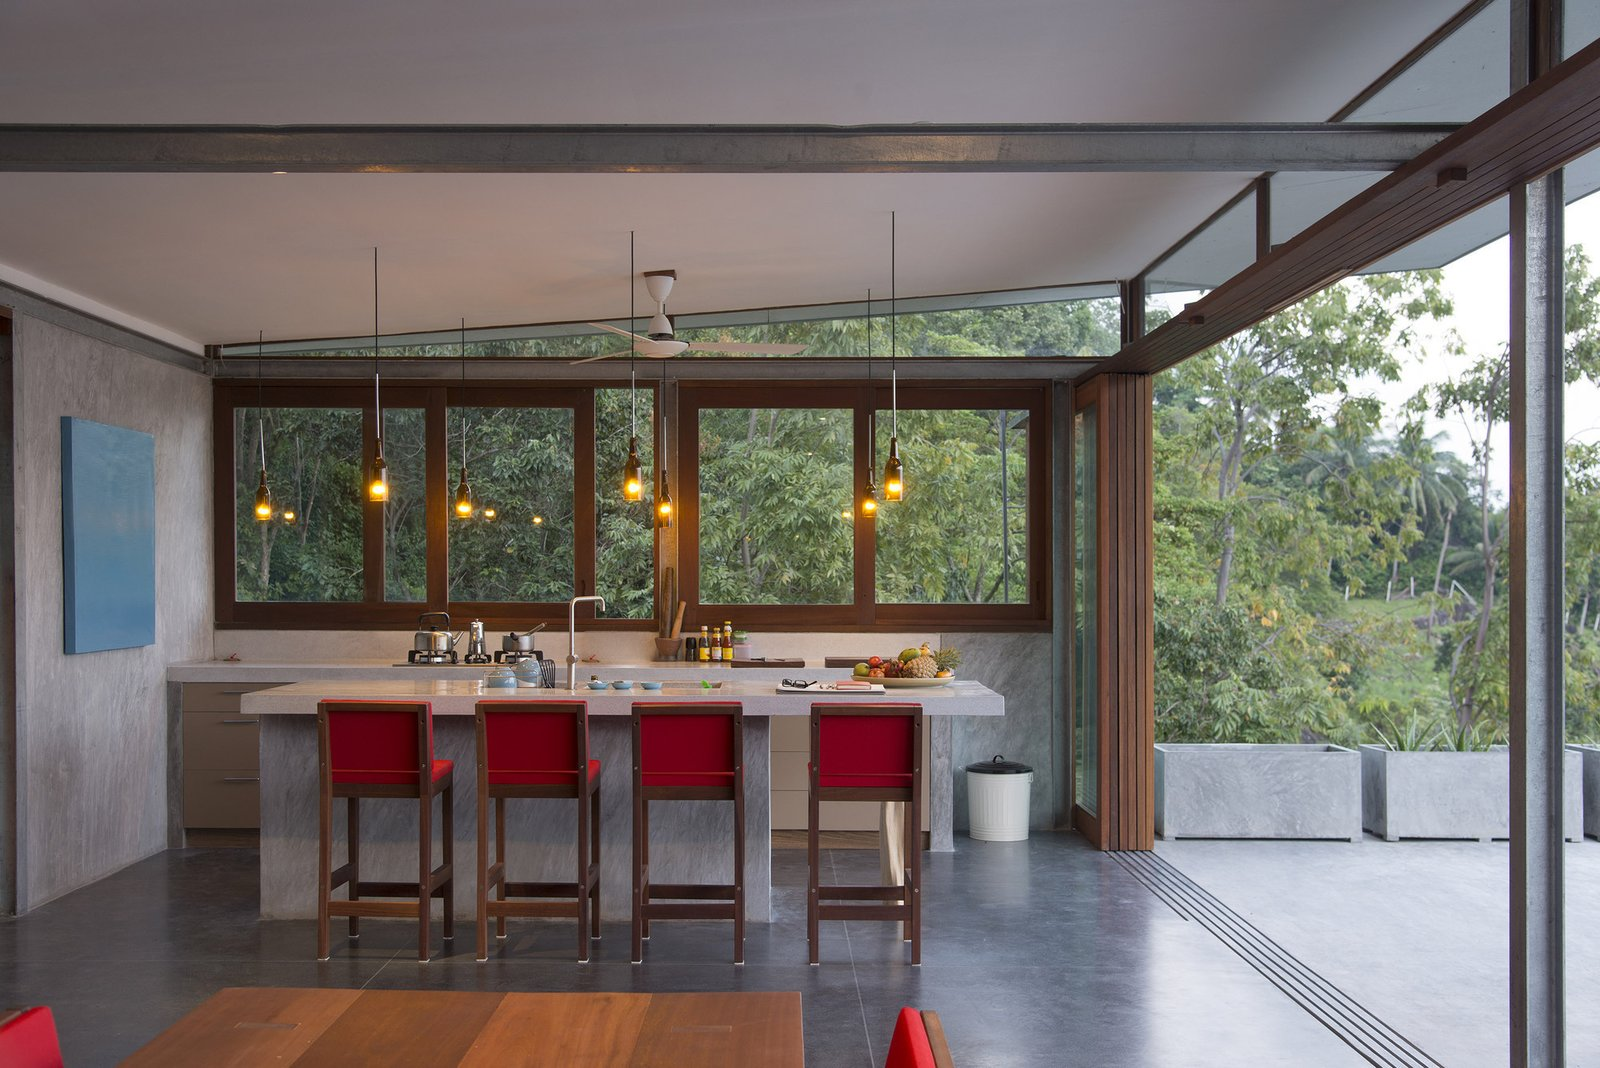 Trees, Bookcase, Sofa, Metal, Chair, Kitchen, Side Yard, Concrete, Range, Pendant, and Stone  Best Kitchen Chair Photos from Take a Trip to This Photographer-Designed Concrete Home in Thailand